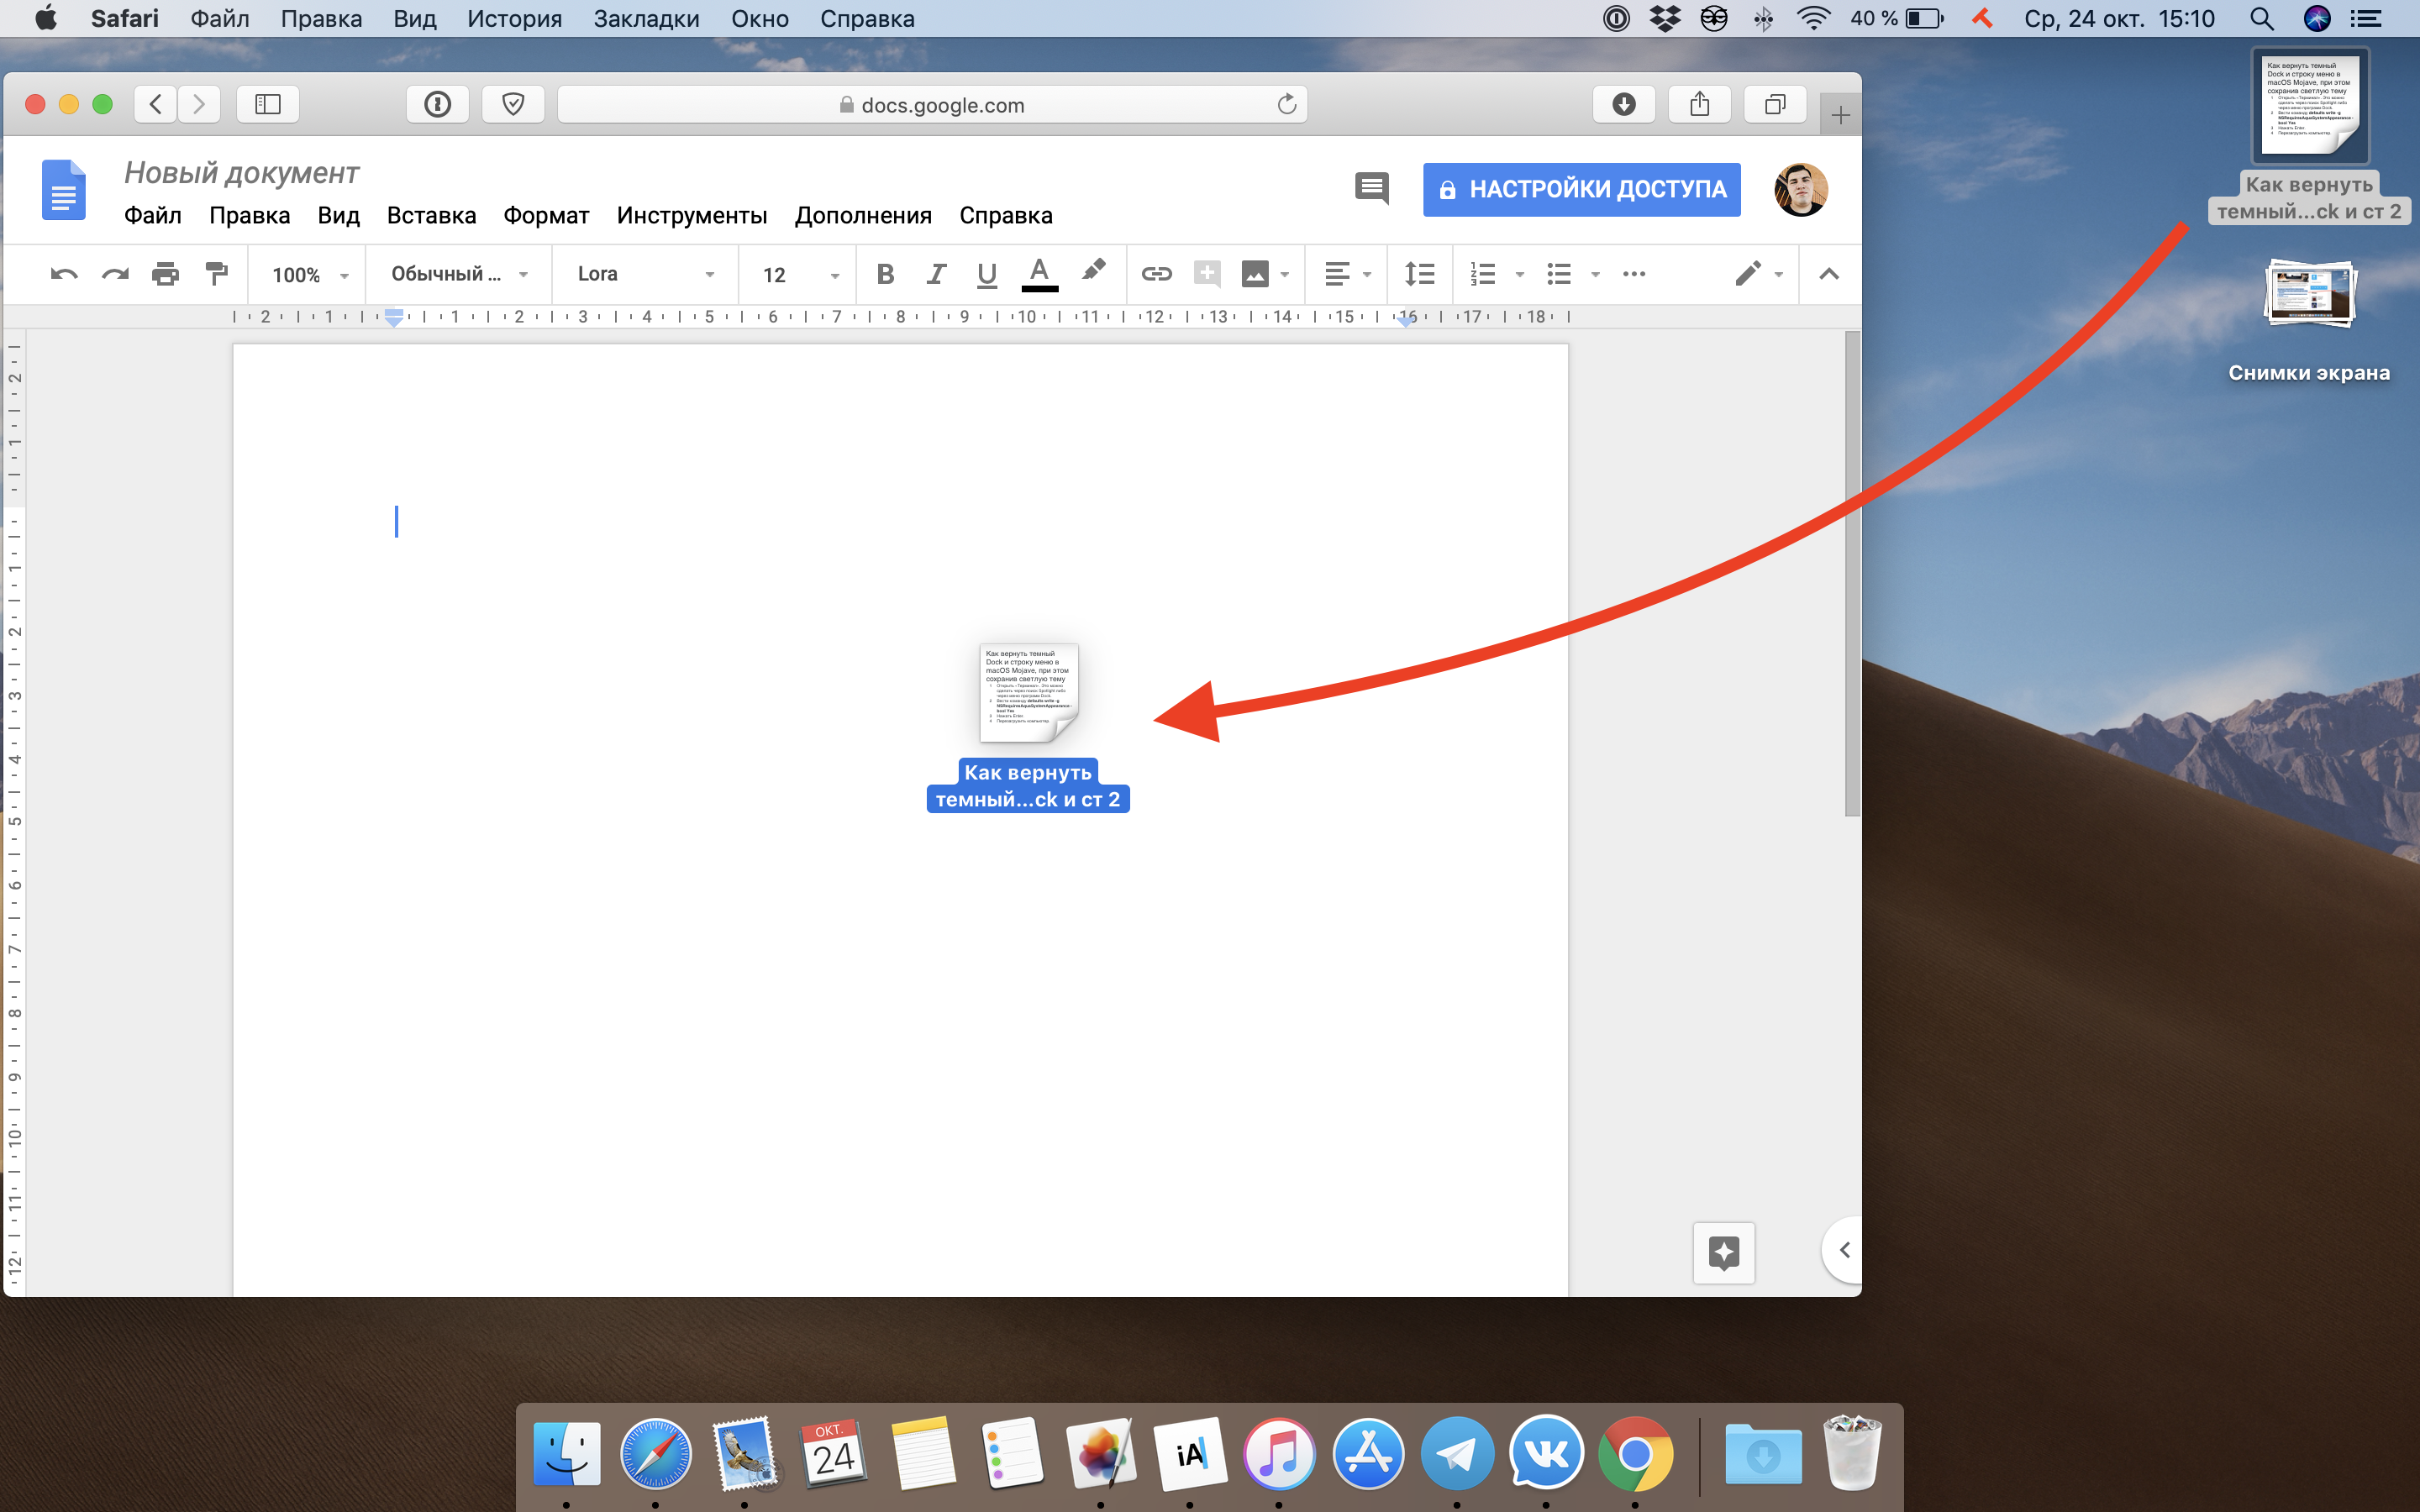 How to save selected text in macOS